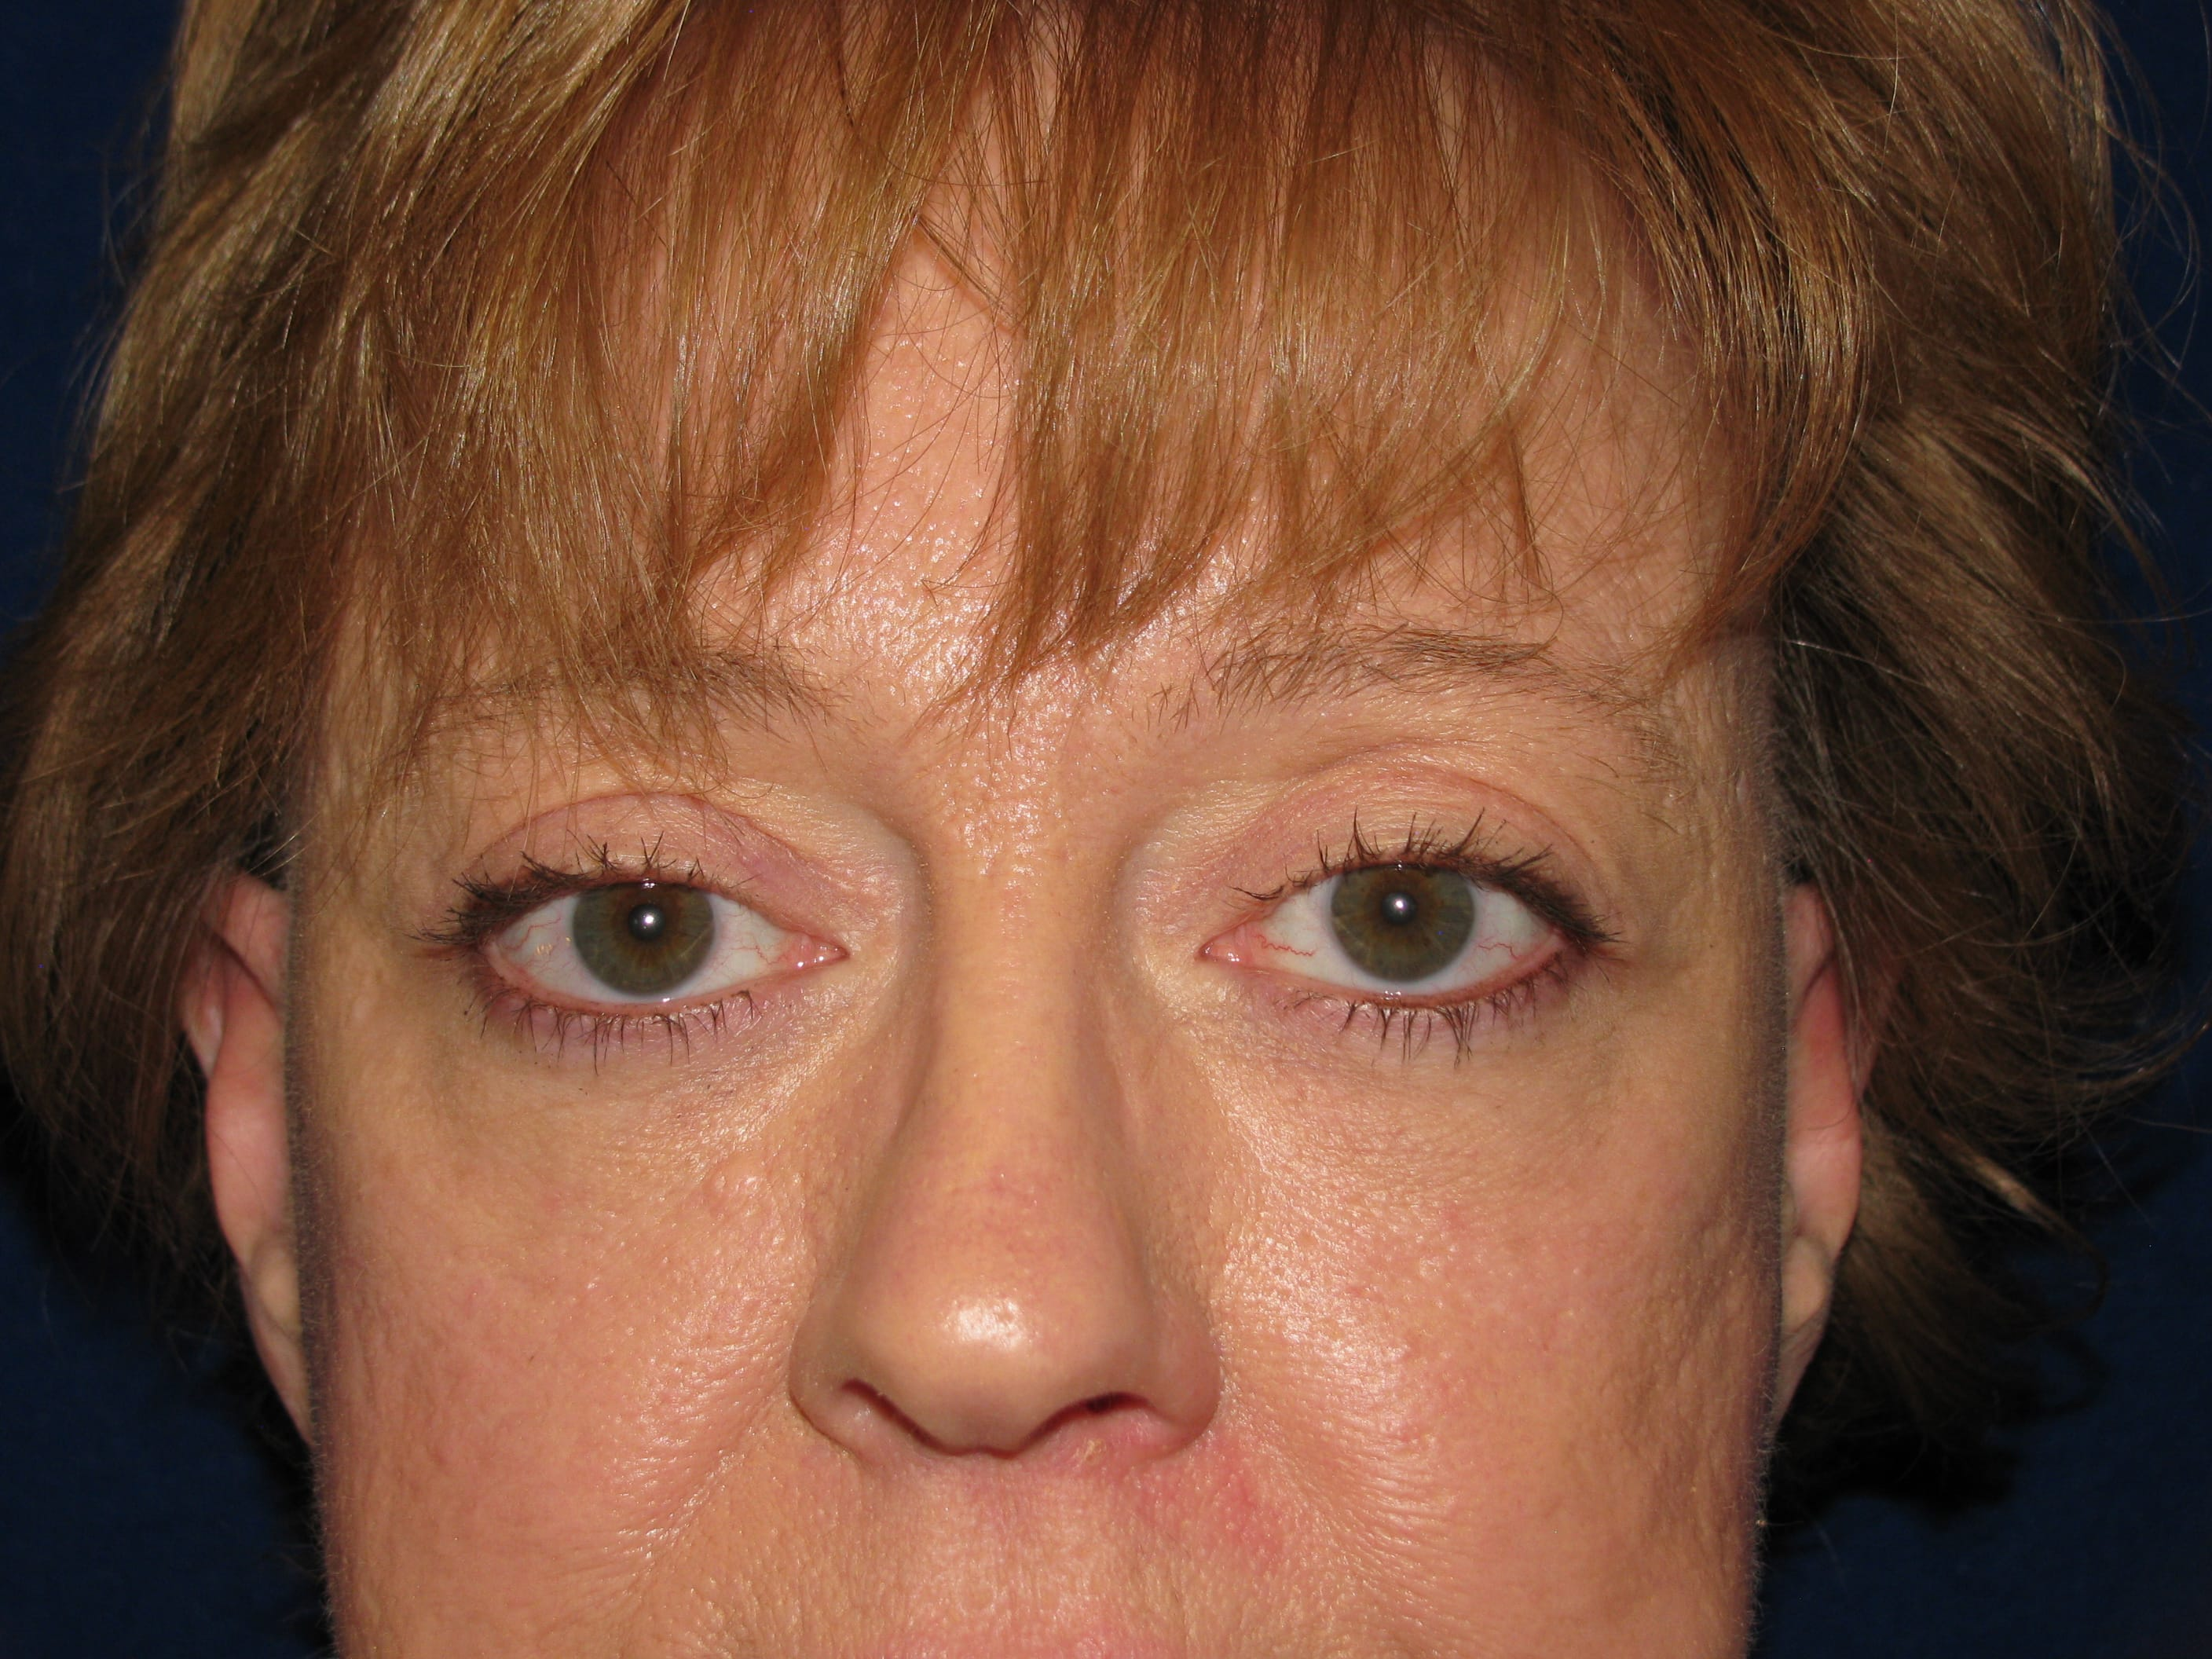 Eyelid Surgery, LV Plastic Surgery Center